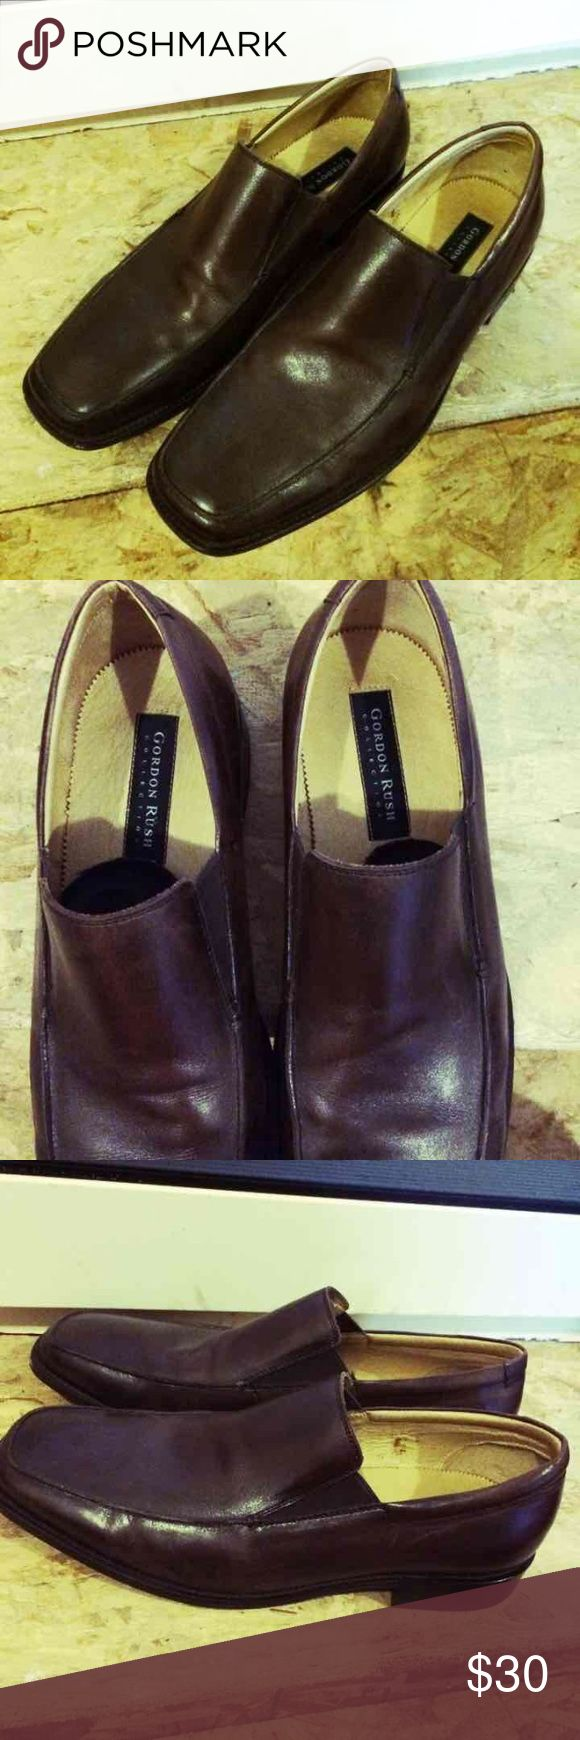 Mens brown loafers Pre loved, good condition. Cleaning out husbands shoe rack!! Bundle and save!! Soft leather Shoes Flats & Loafers